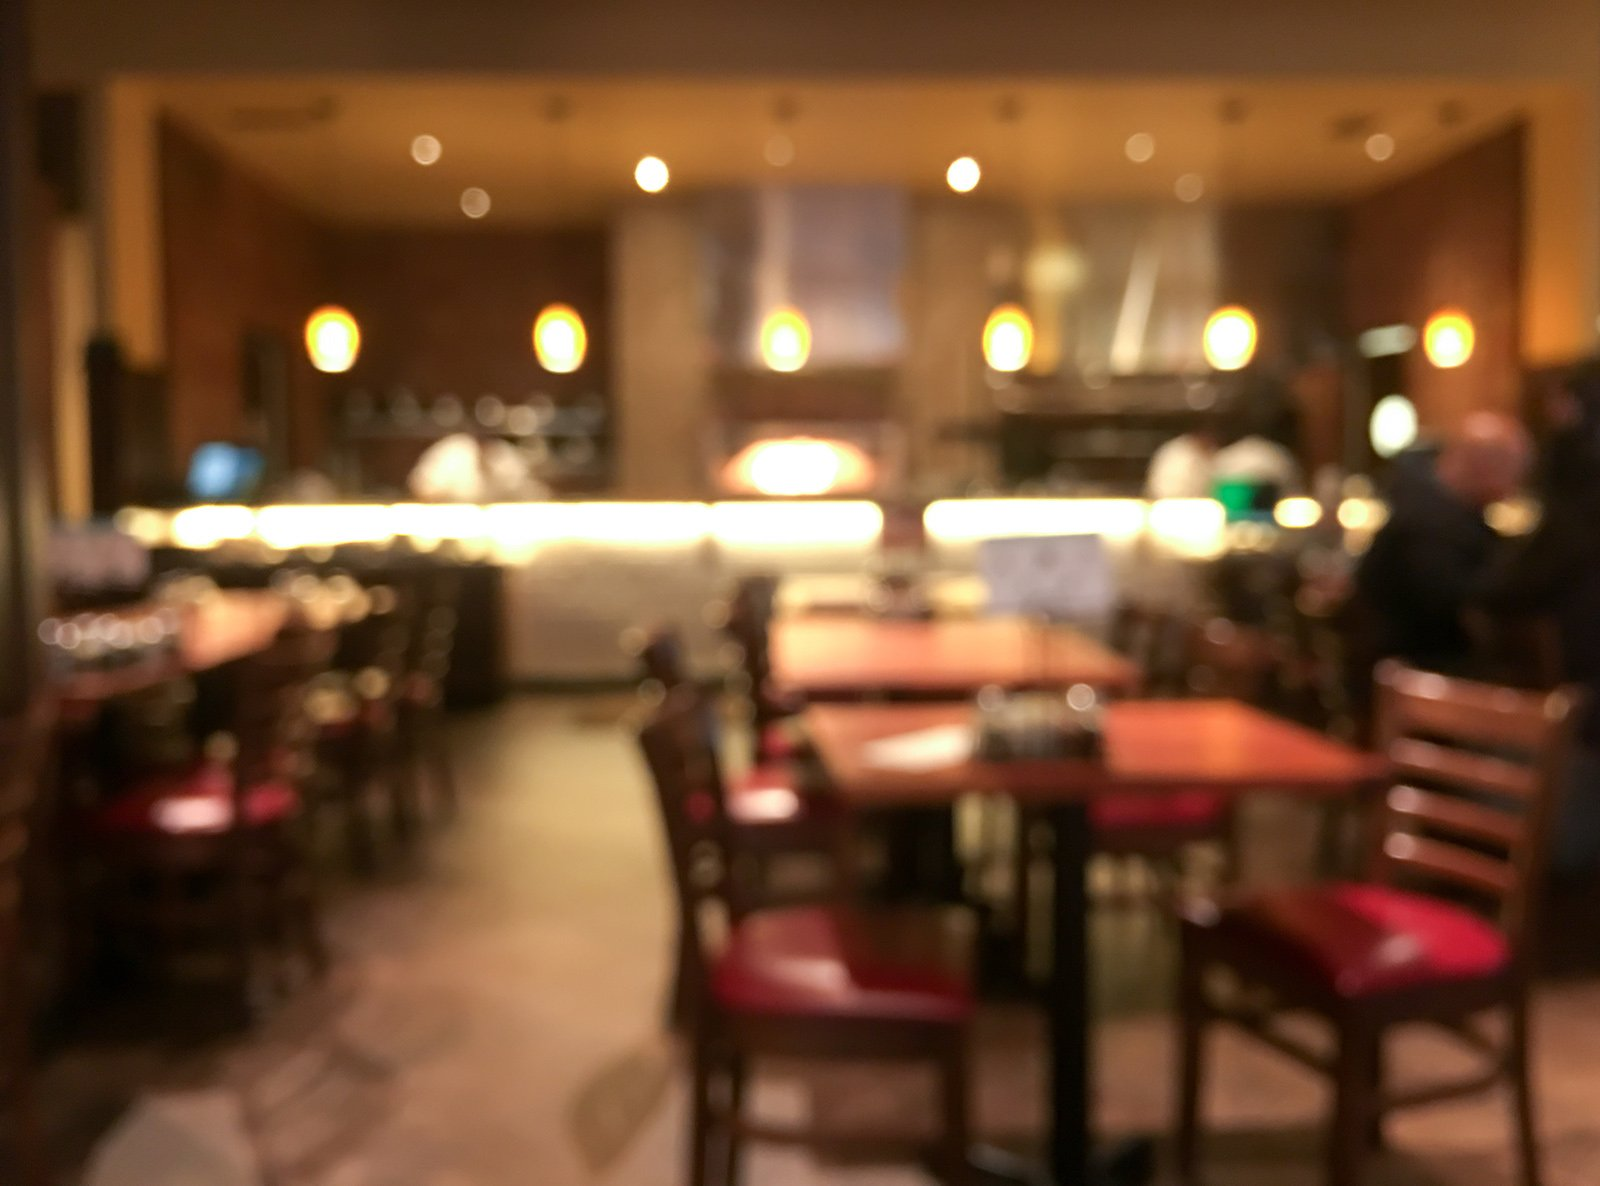 Blurred restaurant and kitchen on background, abstract